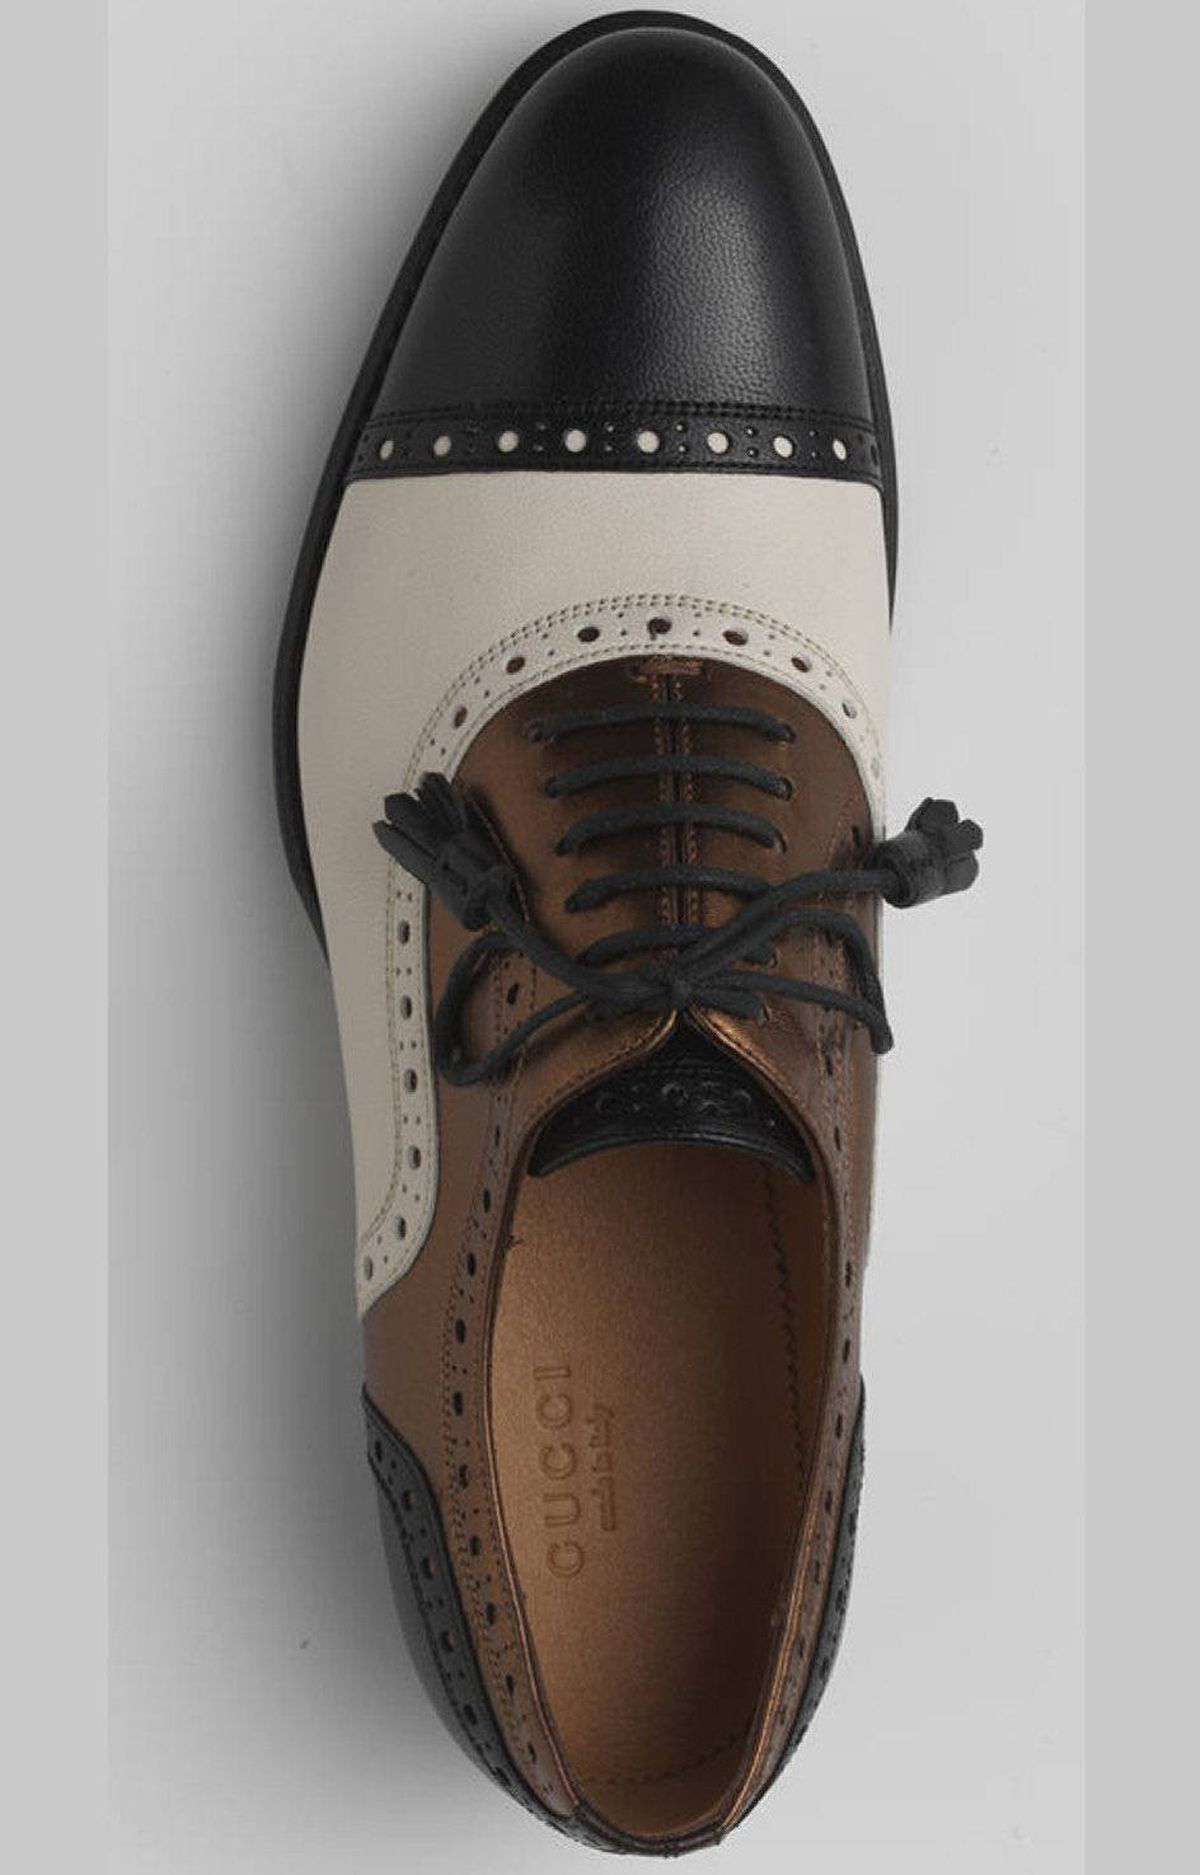 Women's leather and silk spectators by Gucci, $675 at Holt Renfrew (www.holtrenfew.com)